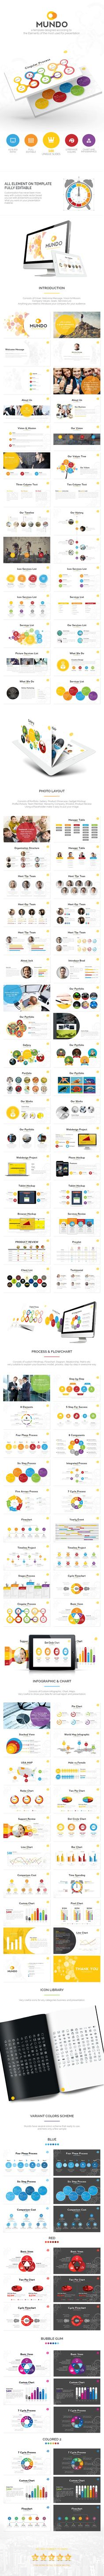 Mundo Keynote ¨C Conquered Your Presentations Get it now! an Amazing Keynote Template with a circle as a theme for your Presentatio